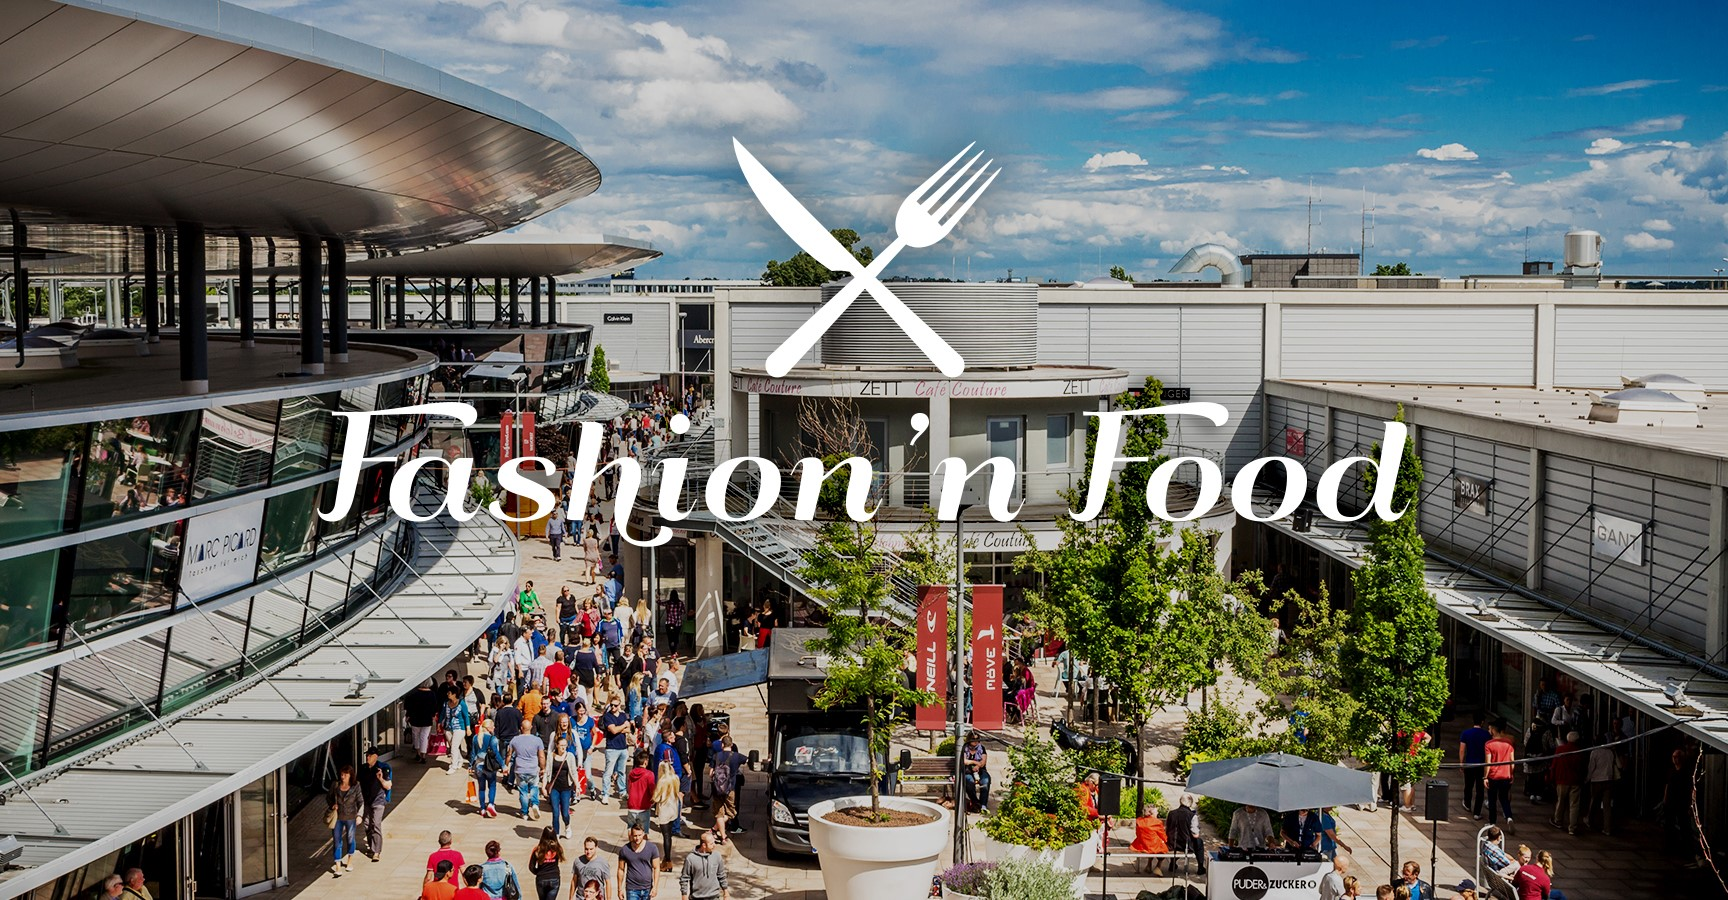 Braunschweig Outlet Fashion Food Streetfood In Den Designer Outlets Wolfsburg